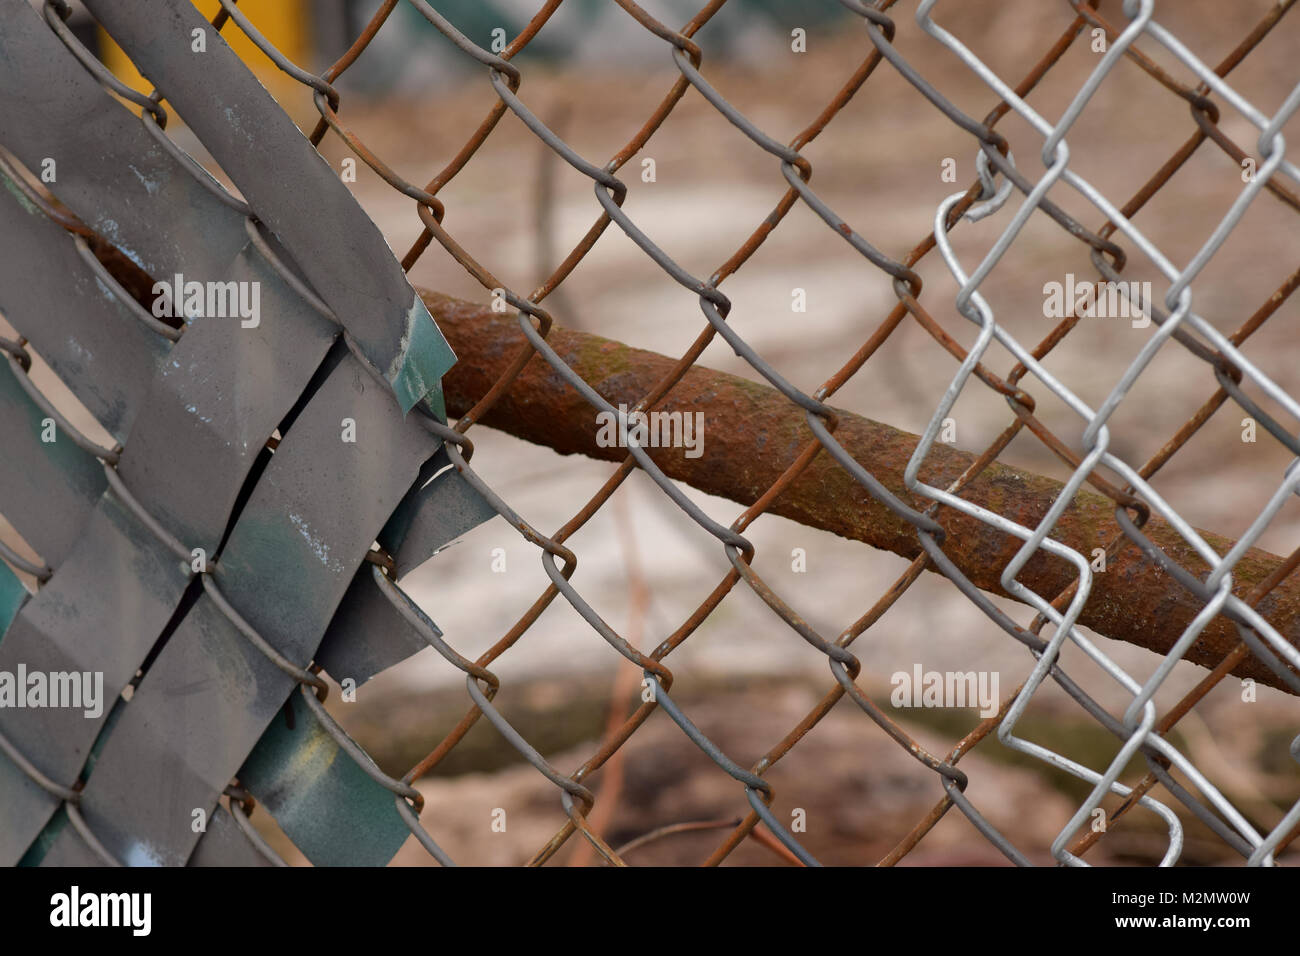 Rusty Chain Link Fence With A Brown And Grey Urban Background Blurred Stock Photo Alamy